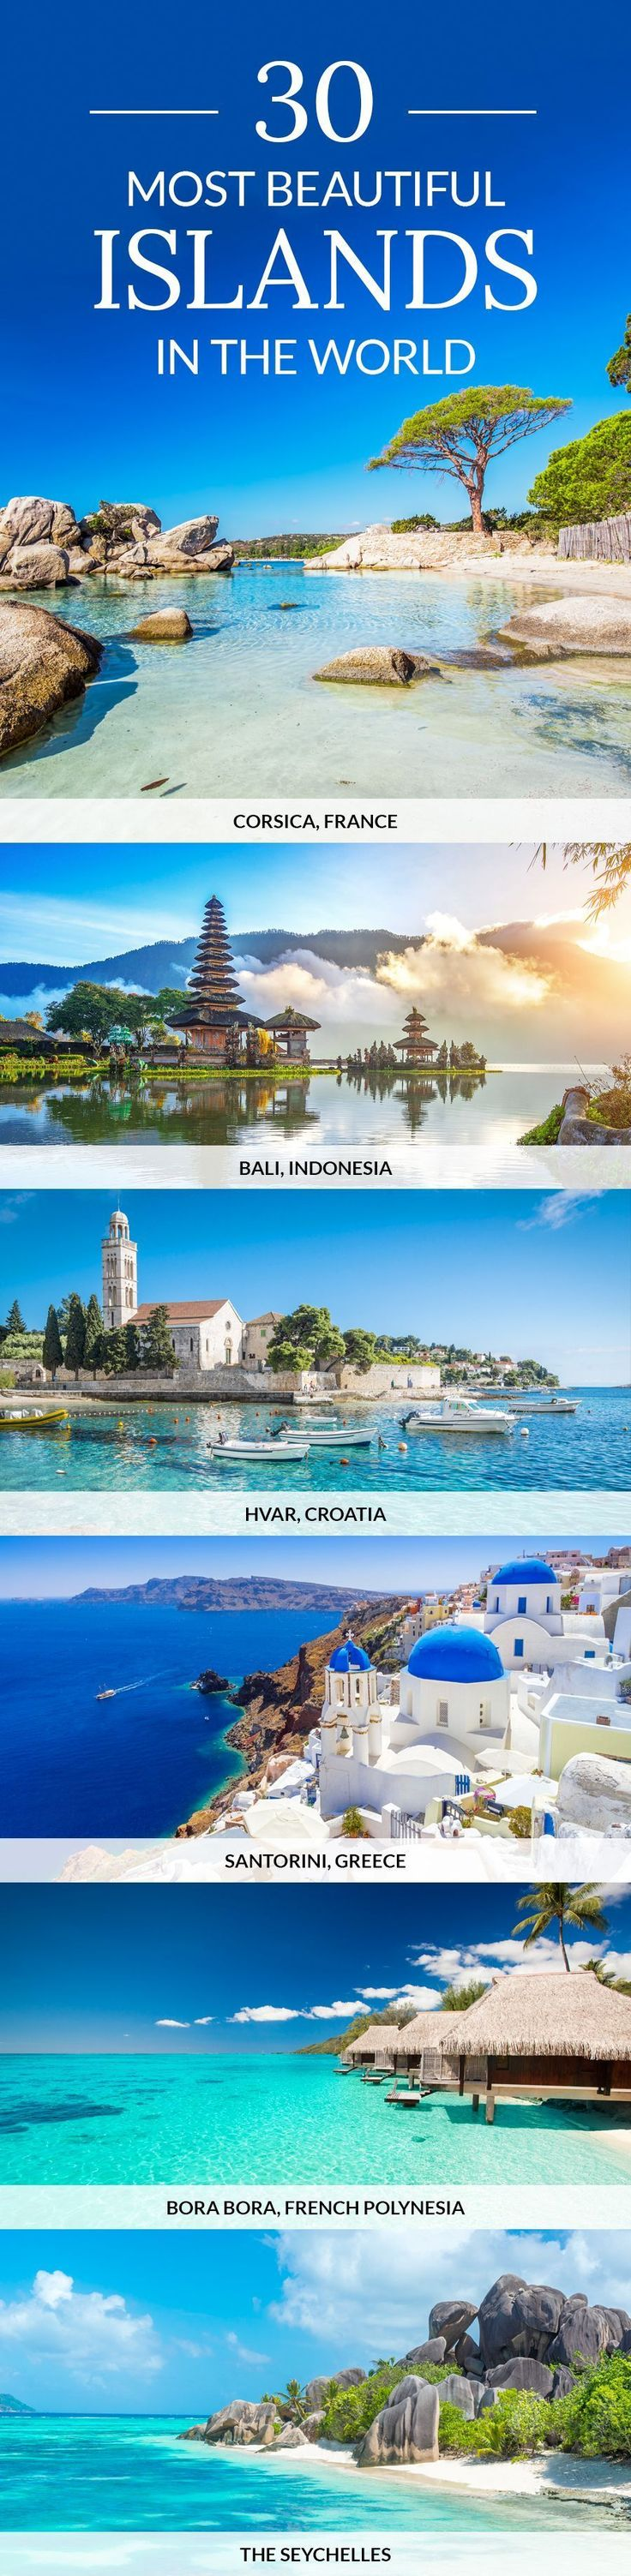 From Bali to Bora Bora, here are some of the most beautiful islands in the world. #TravelDestinationsUsaCheap #TravelDestinationsUsaBudget